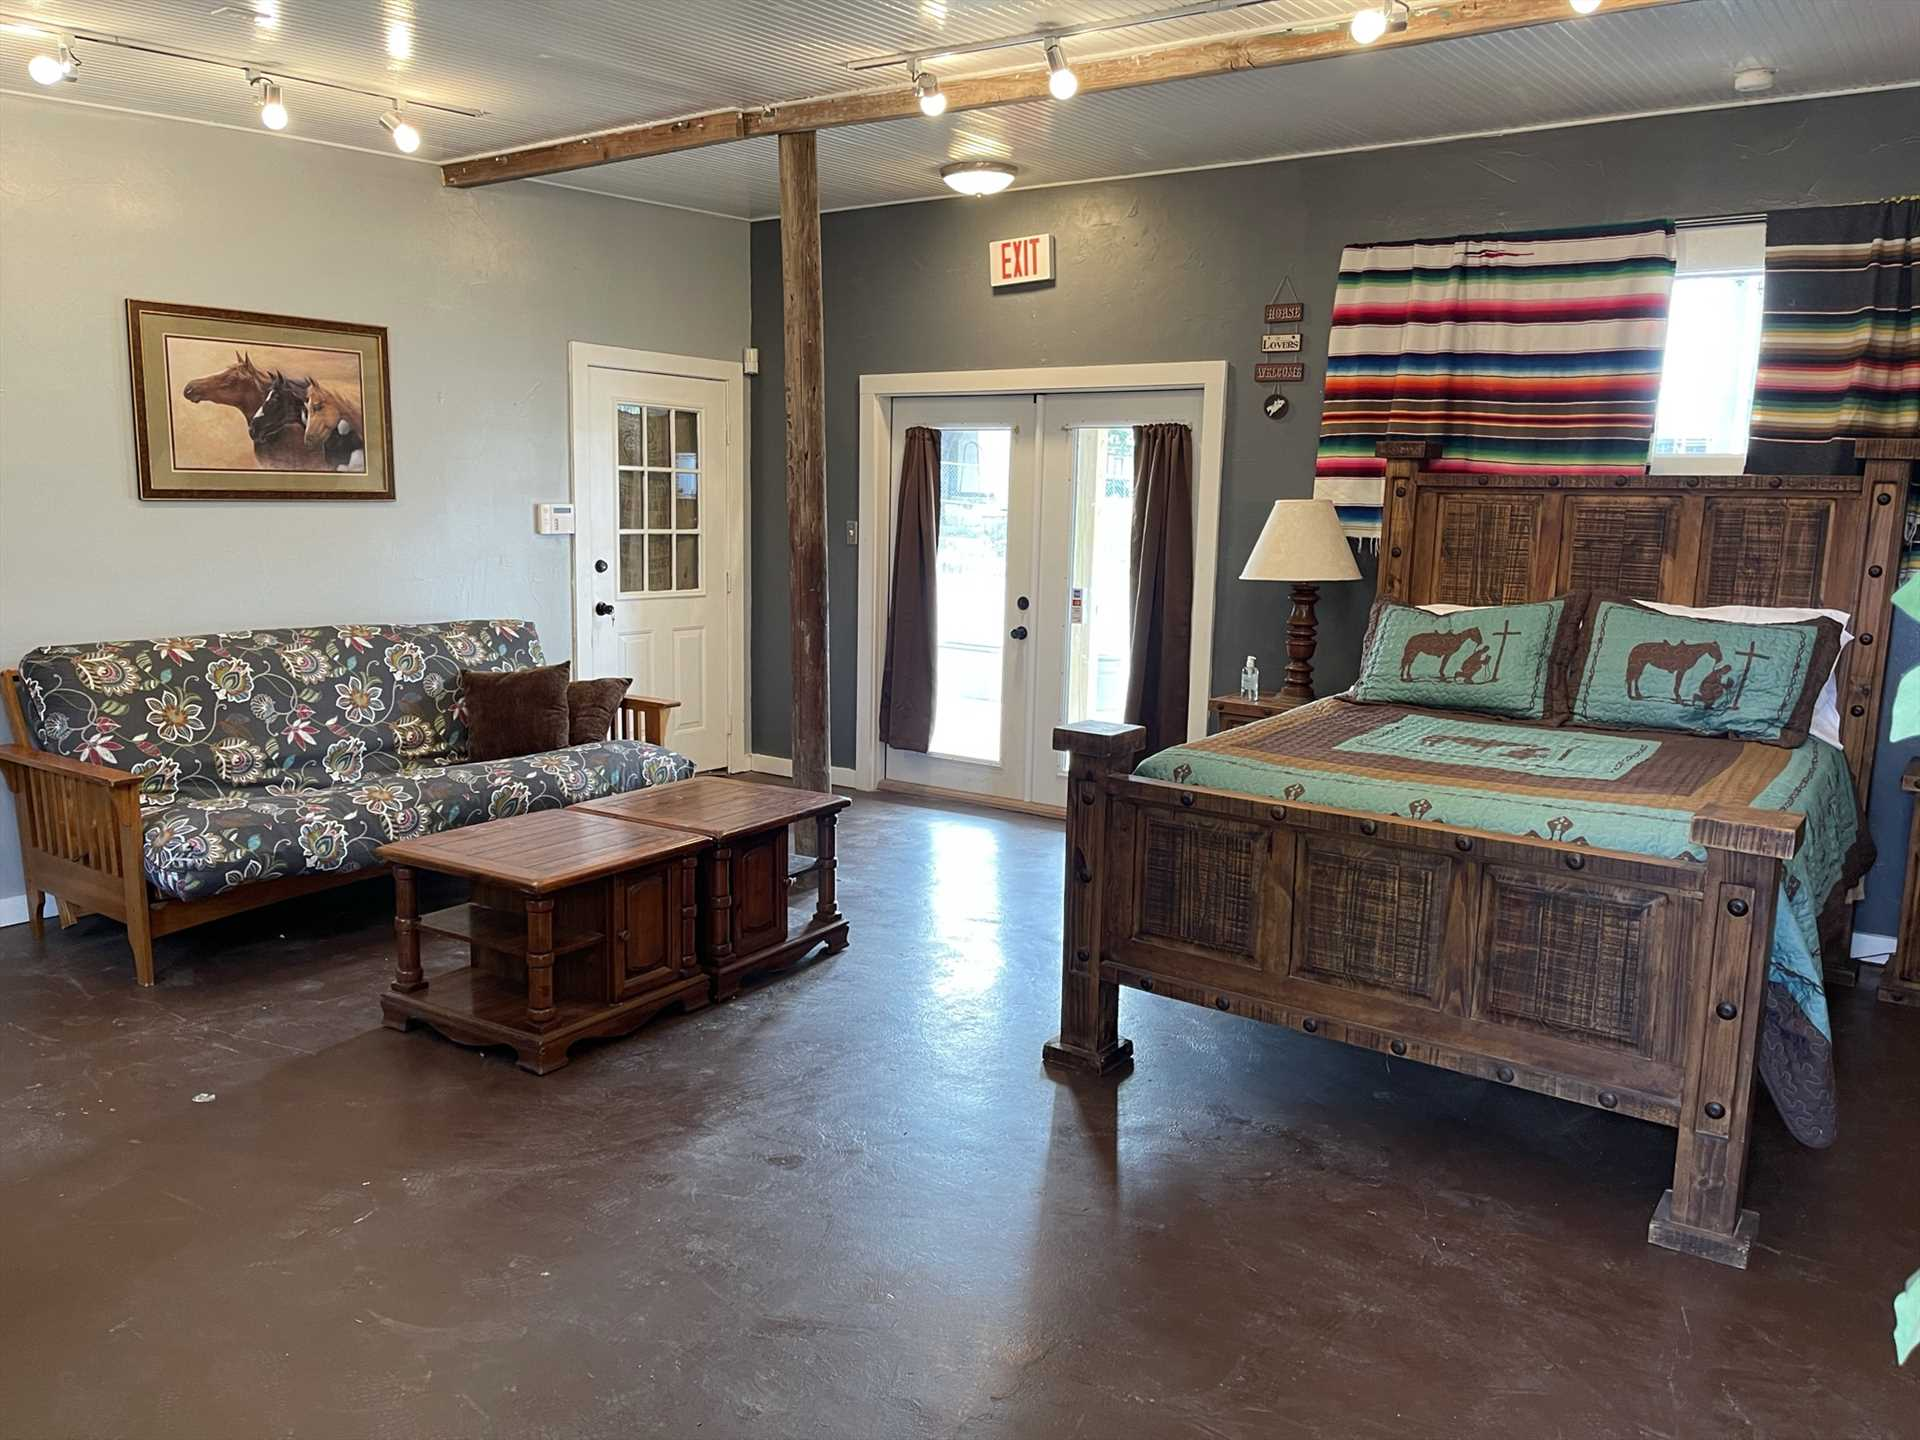 Rest well on the queen-sized bed, surrounded by rustic vintage furnishings. Clean and soft bed linens are included for your comfort!